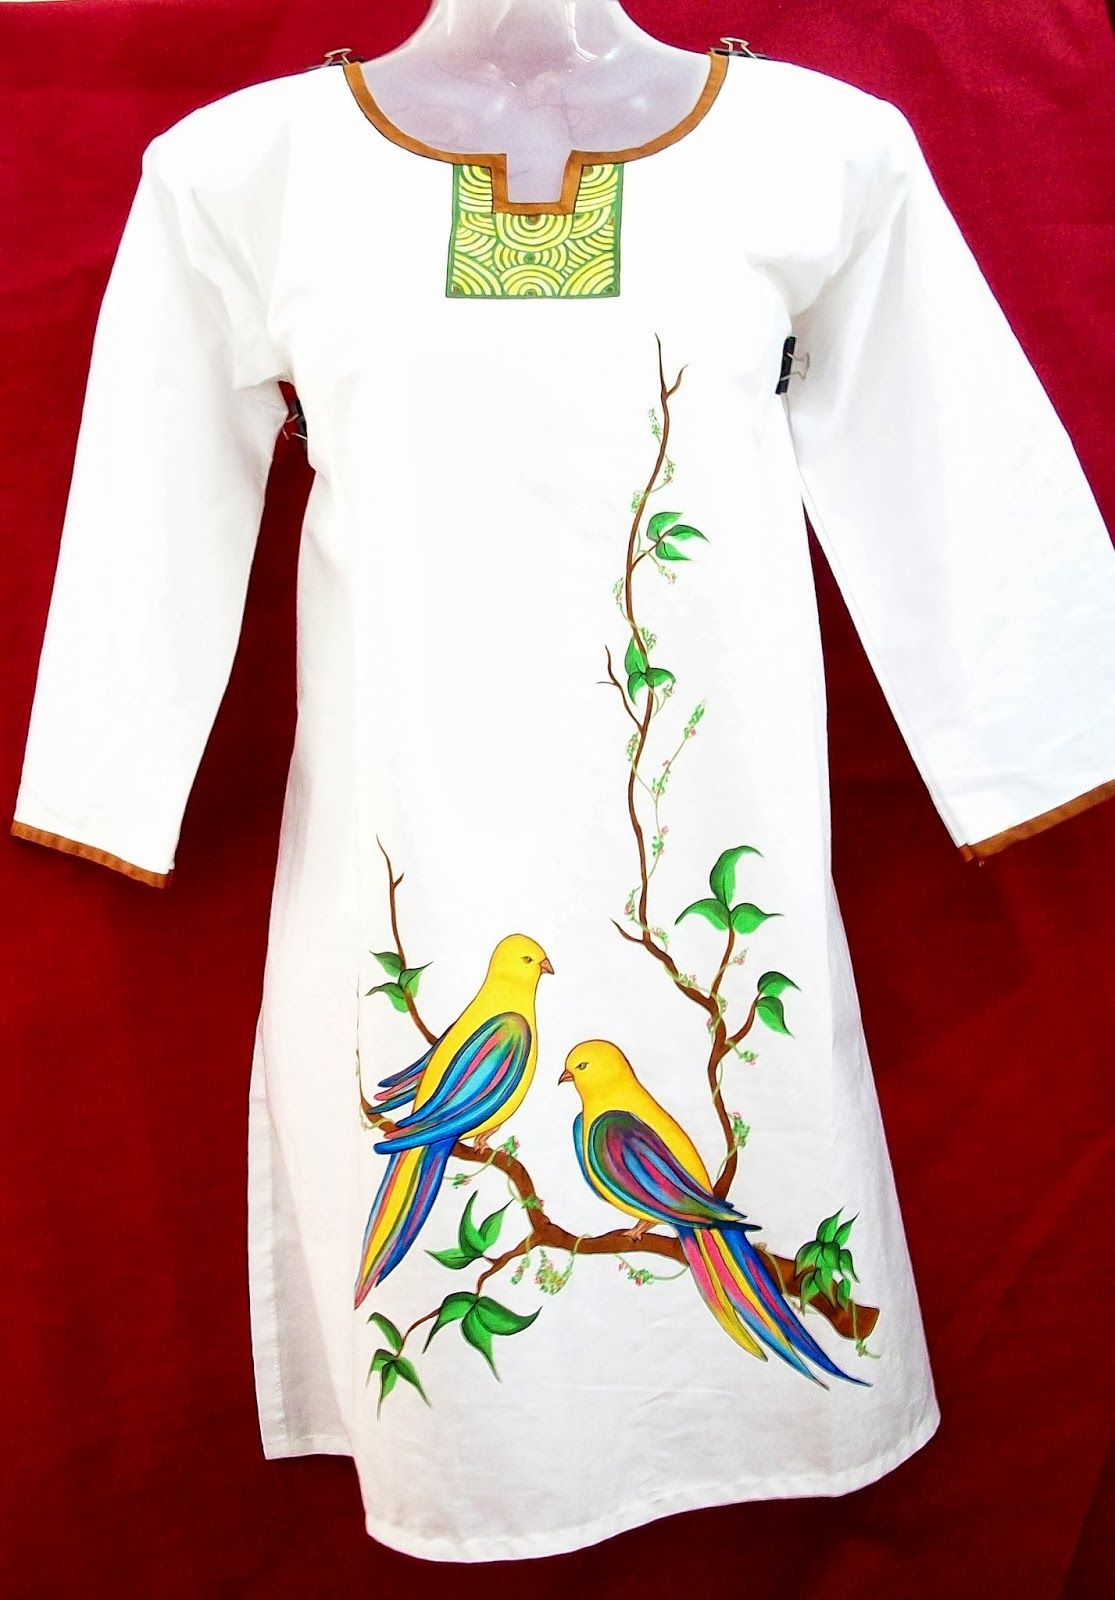 VEDA COLLECTIONS: LADIES KURTHIS | kerala mural painting | Pinterest ... for fabric painting designs on white kurtis  110yll